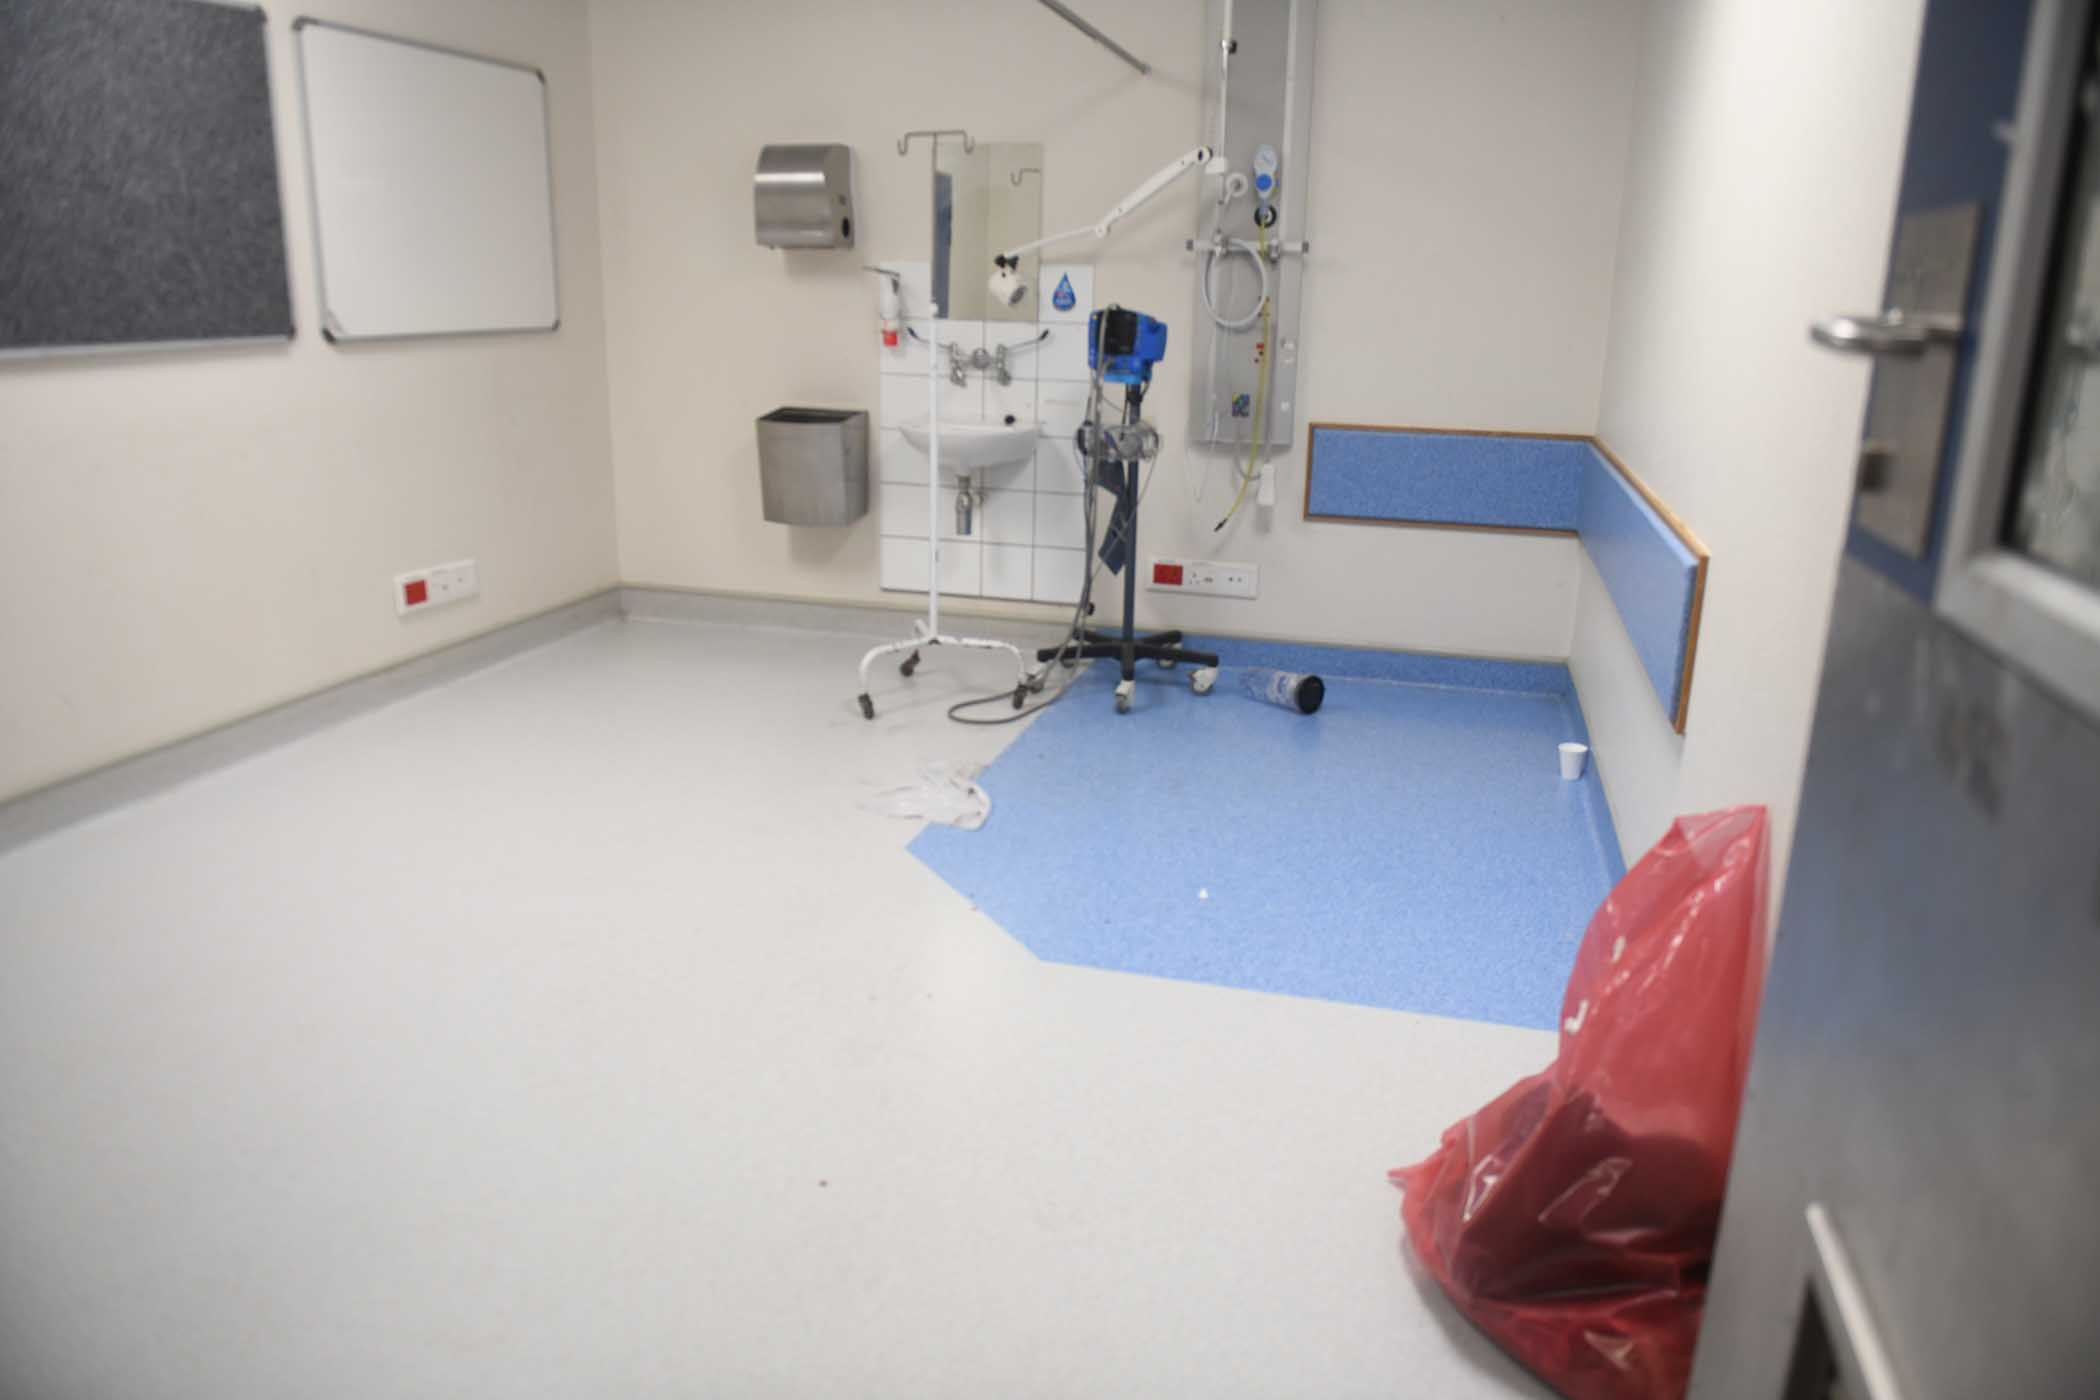 A fairly clean area in Livingstone Hospital during Health Minister, Dr Zweli Mkhize's tour of the facility. PHOTO: Black Star/Spotlight